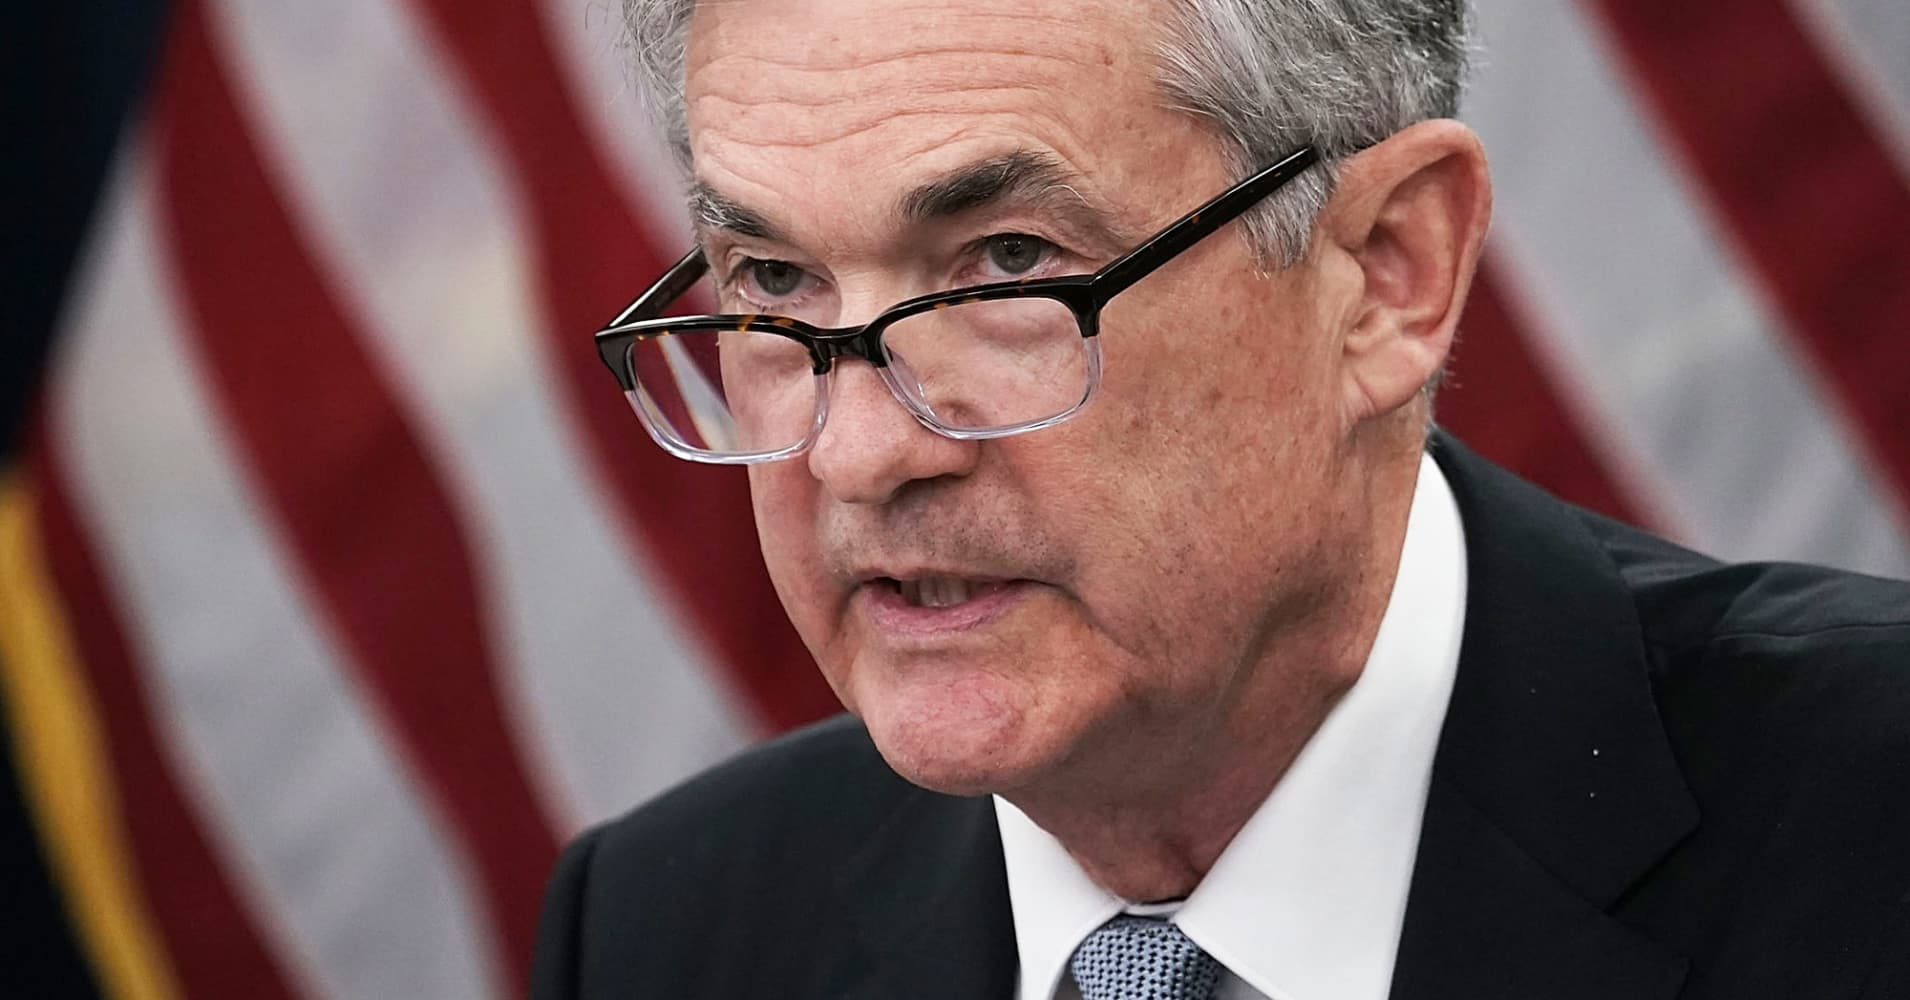 Federal Reserve Chairman Jerome Powell speaks during a news conference March 21, 2018 in Washington, DC.